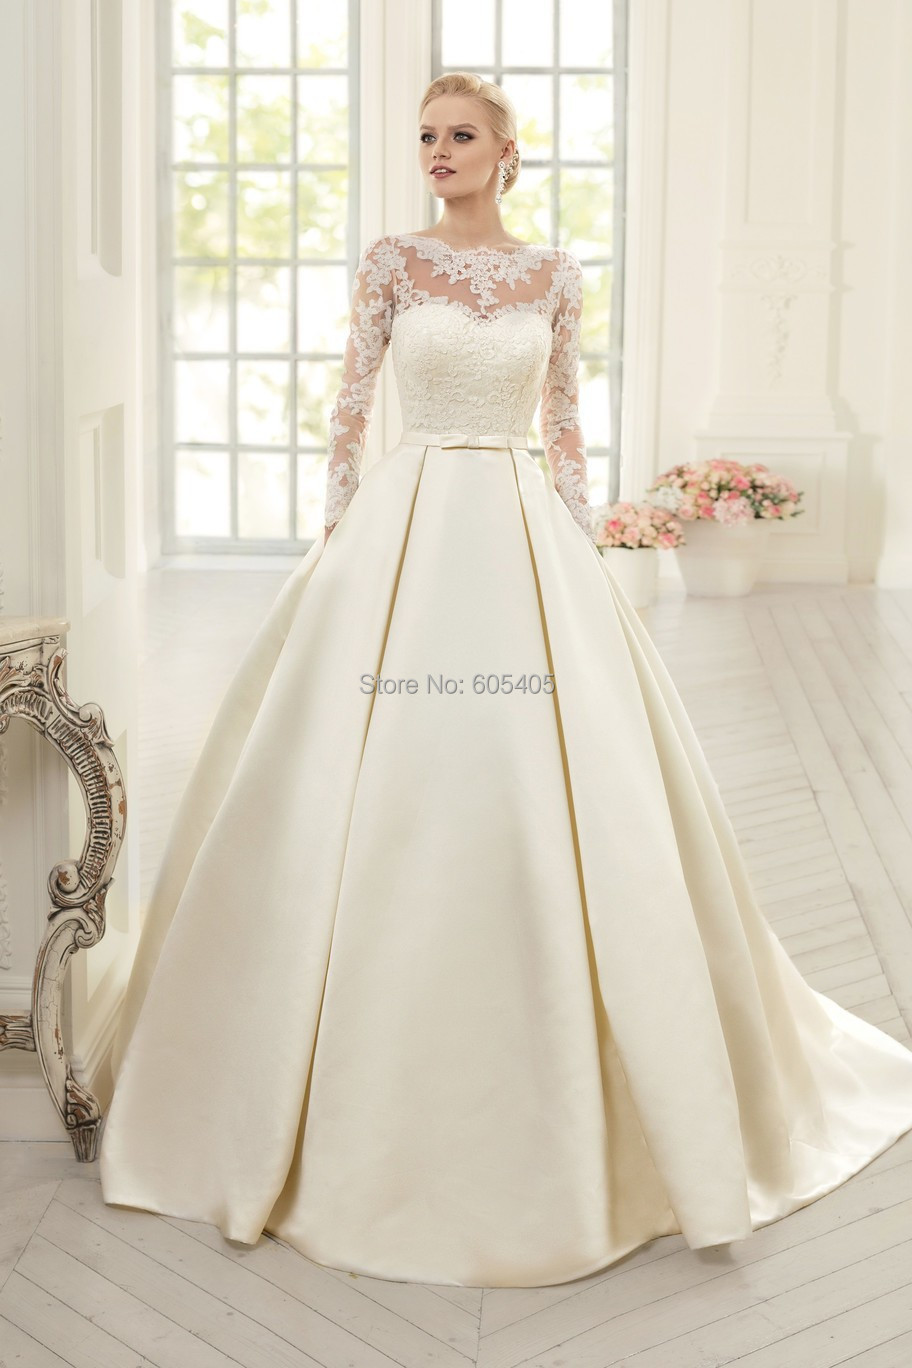 Elegant simple long sleeve wedding dresses with lace 2015 for Simple long sleeve wedding dresses